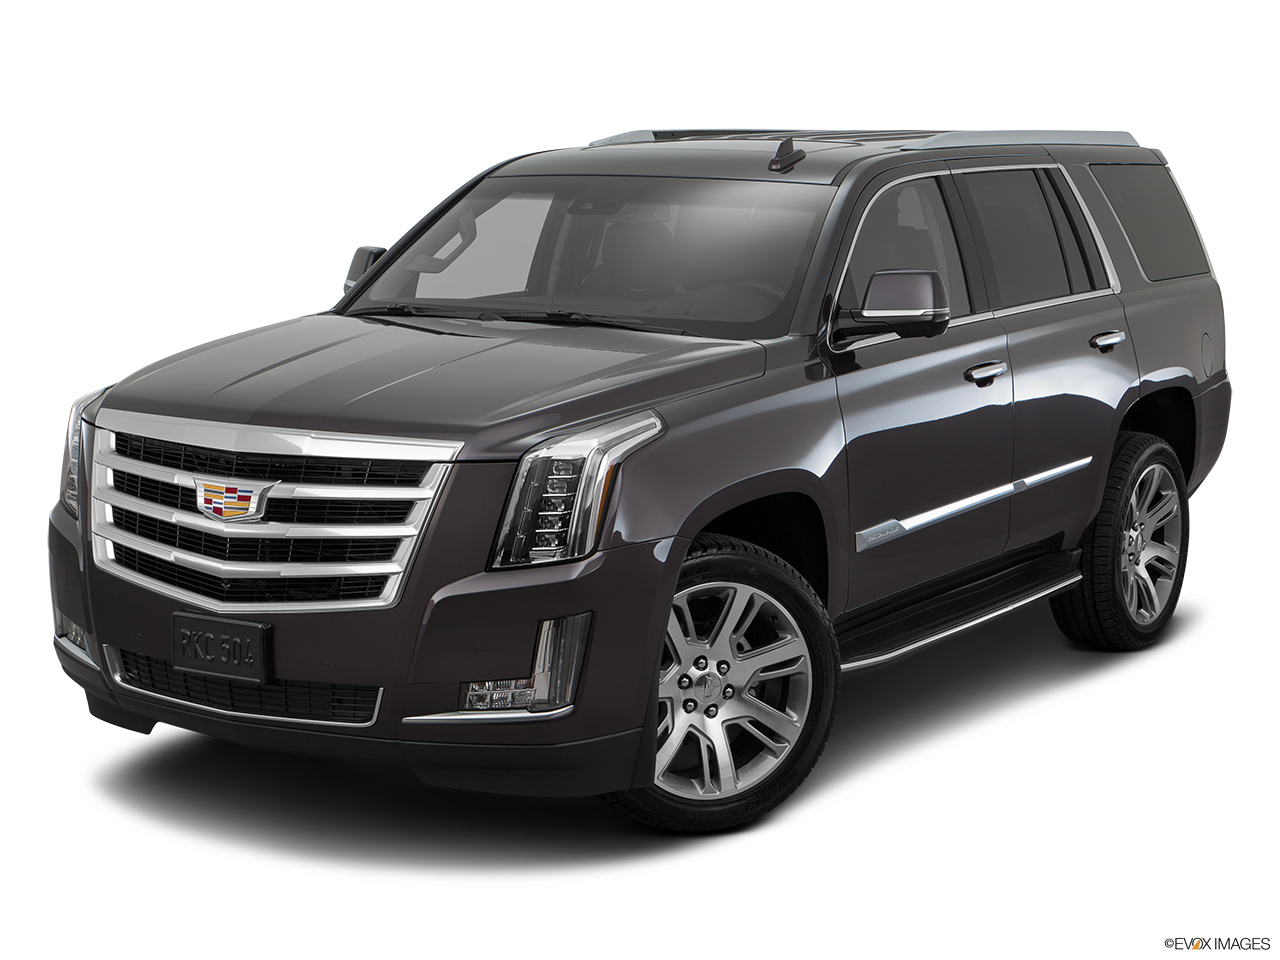 cadillac escalade 2016 6 2l base in saudi arabia new car prices specs reviews photos. Black Bedroom Furniture Sets. Home Design Ideas